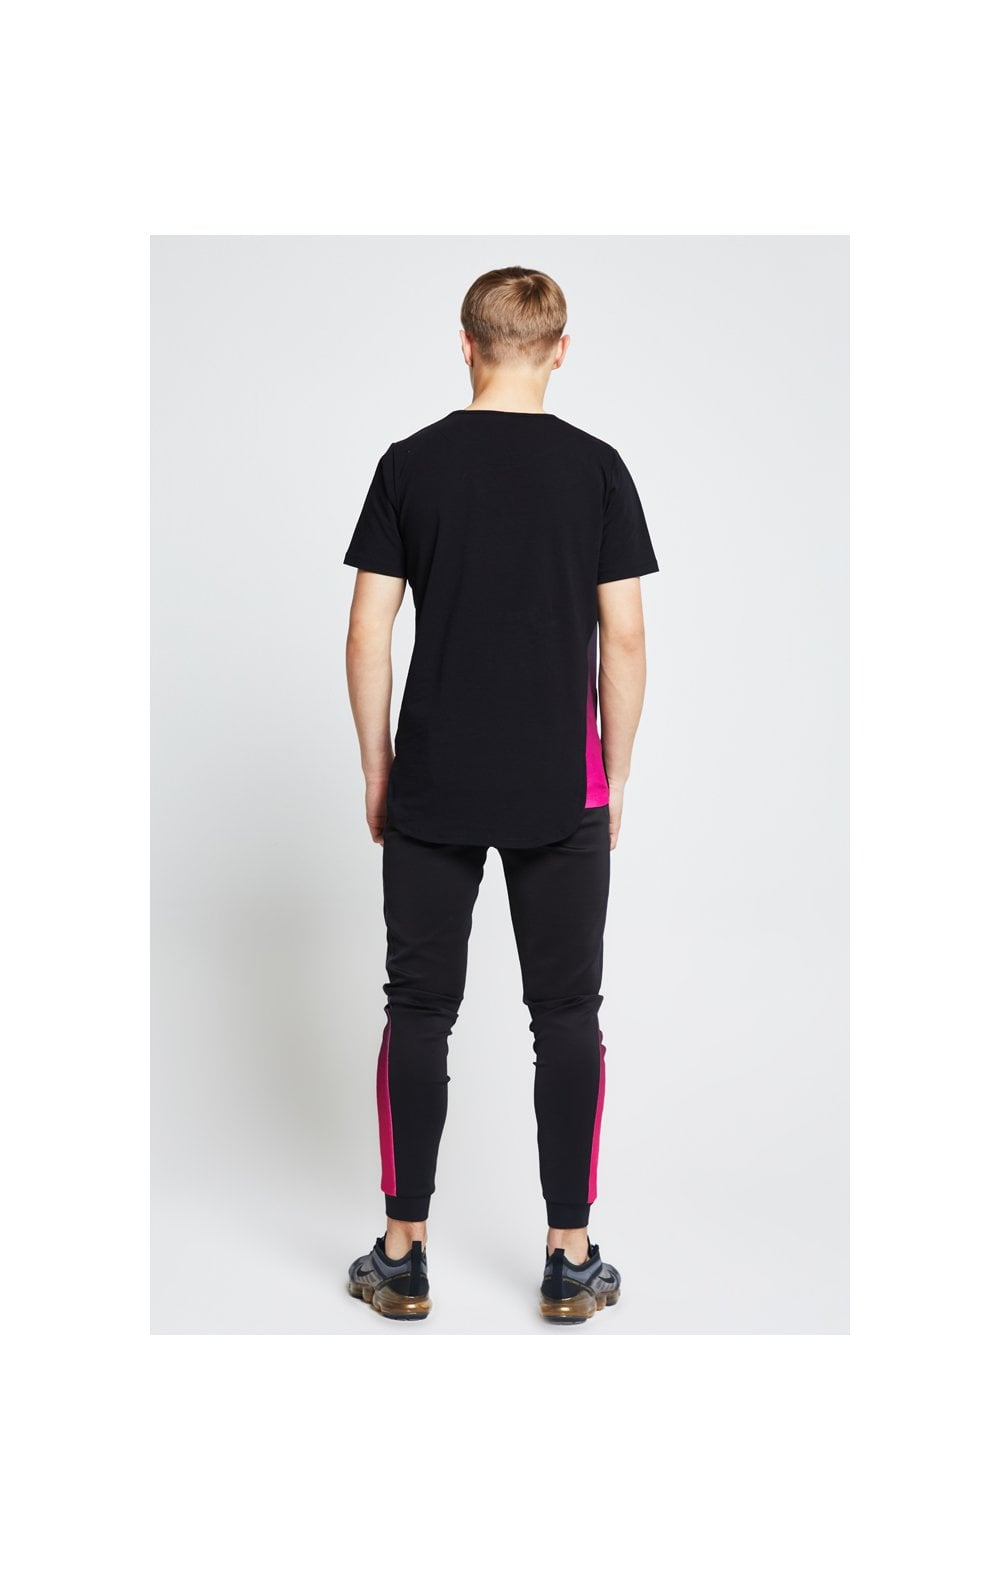 Illusive London Slide Tee - Black & Pink (4)